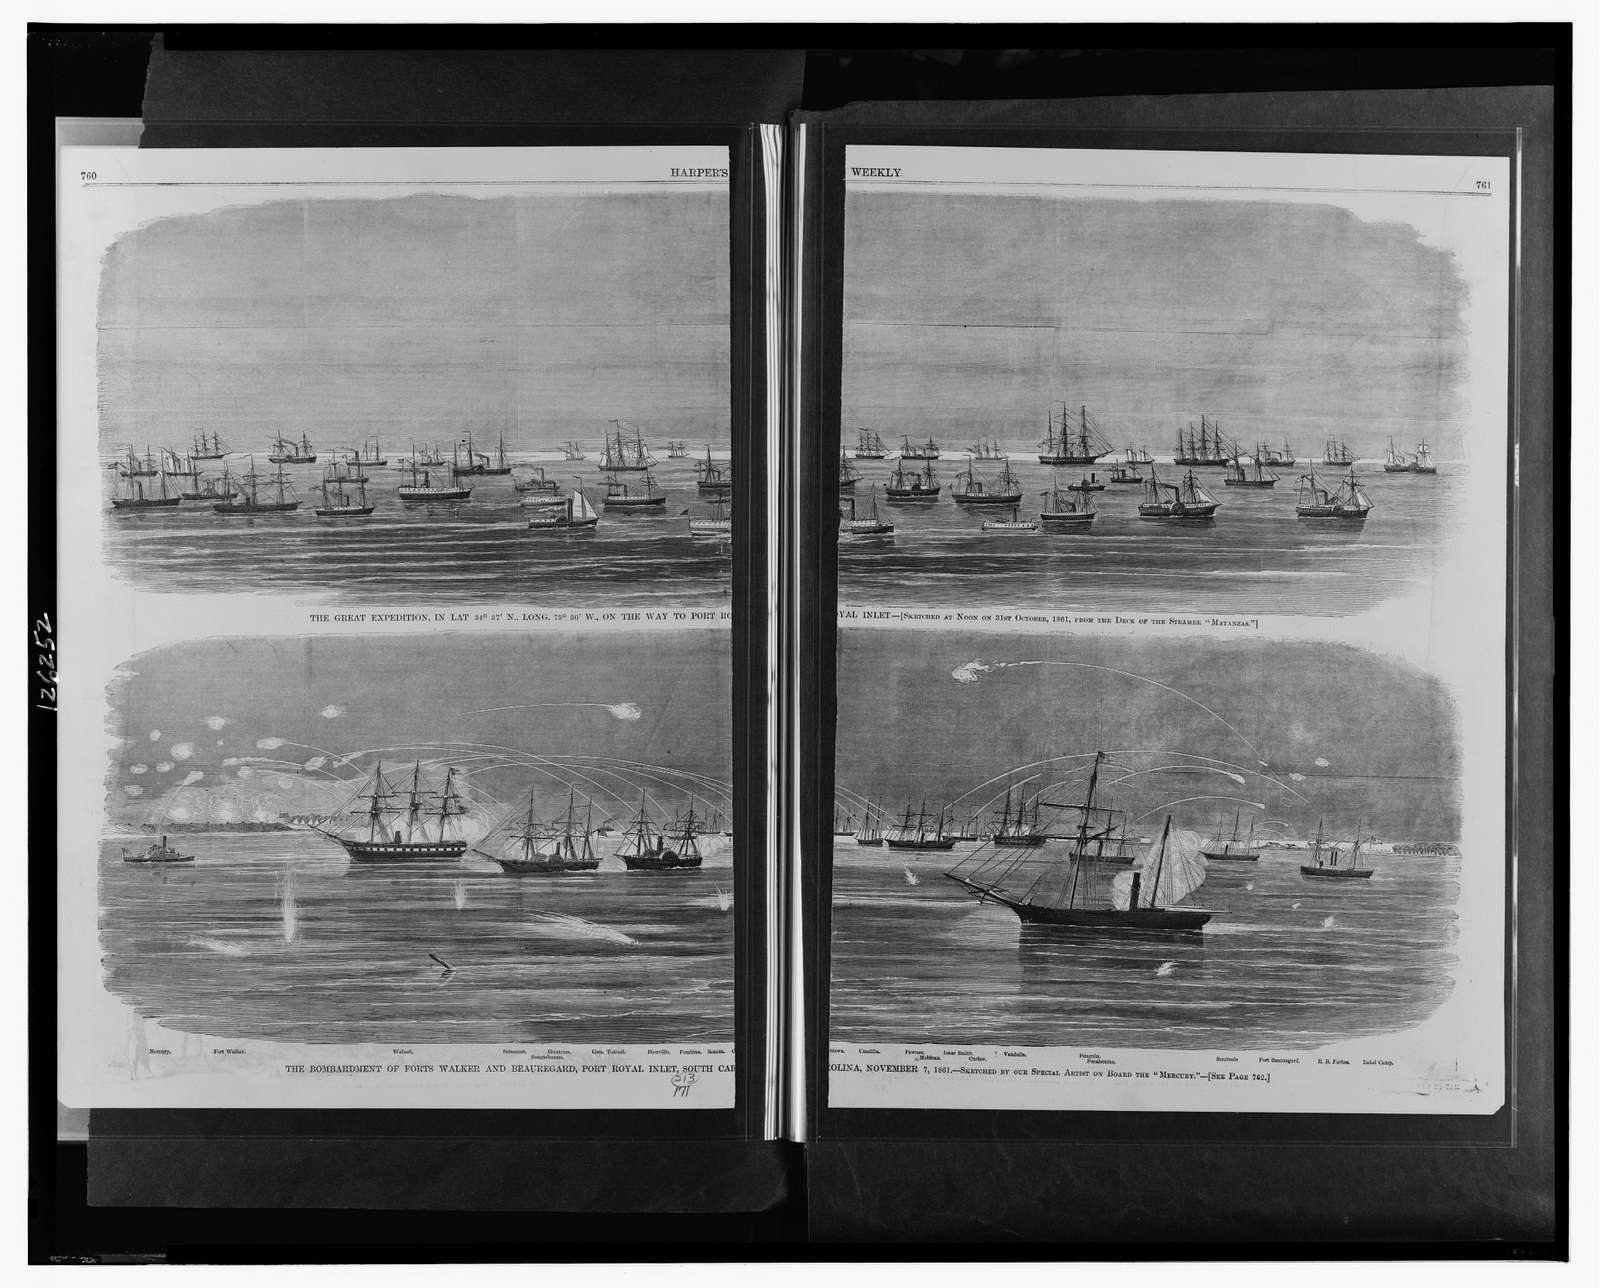 """The great expedition, [...] on the way to Port Royal Inlet / sketched at noon on 31st October, 1861, from the deck of the steamer """"Matanzas.""""  The bombardment of Forts Walker and Beauregard, Port Royal Inlet, South Carolina, November 7, 1861 / sketched by our special artist on board the """"Mercury."""""""